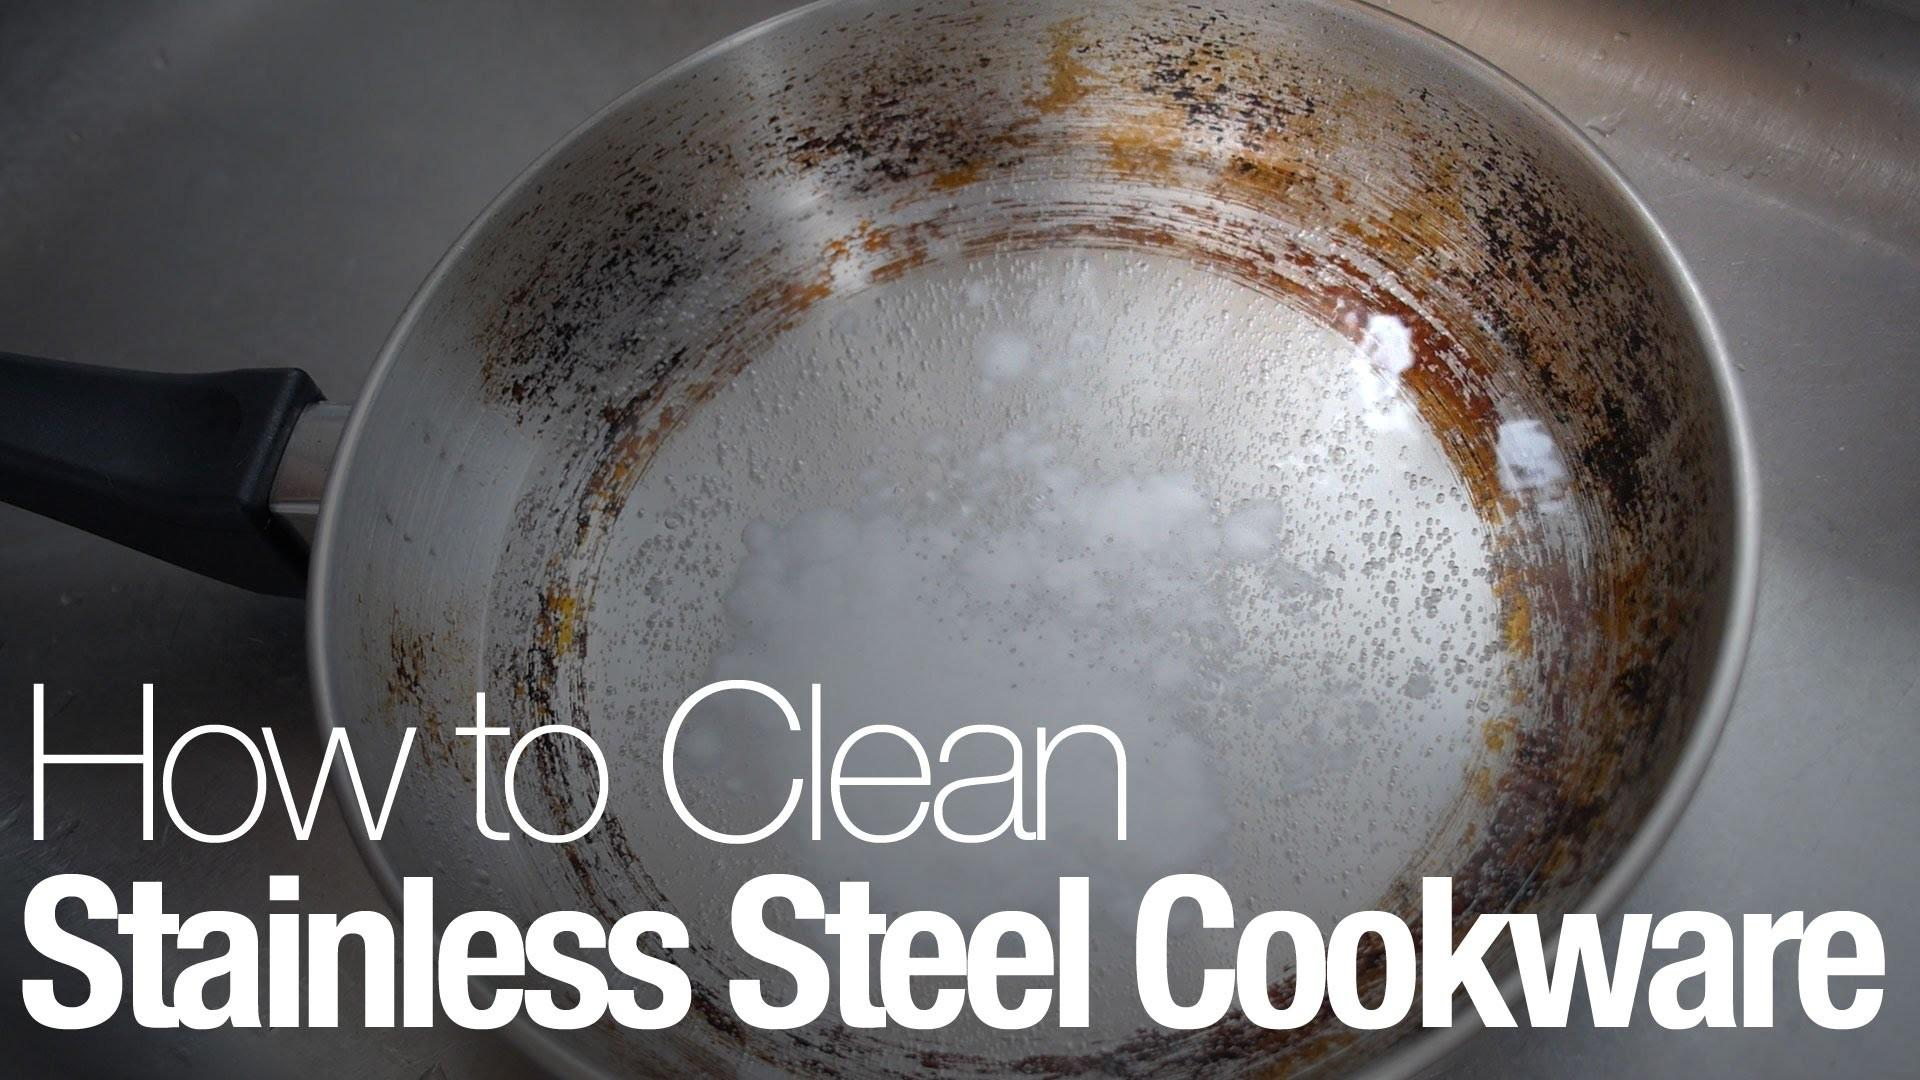 Clean Stainless Steel Cookware